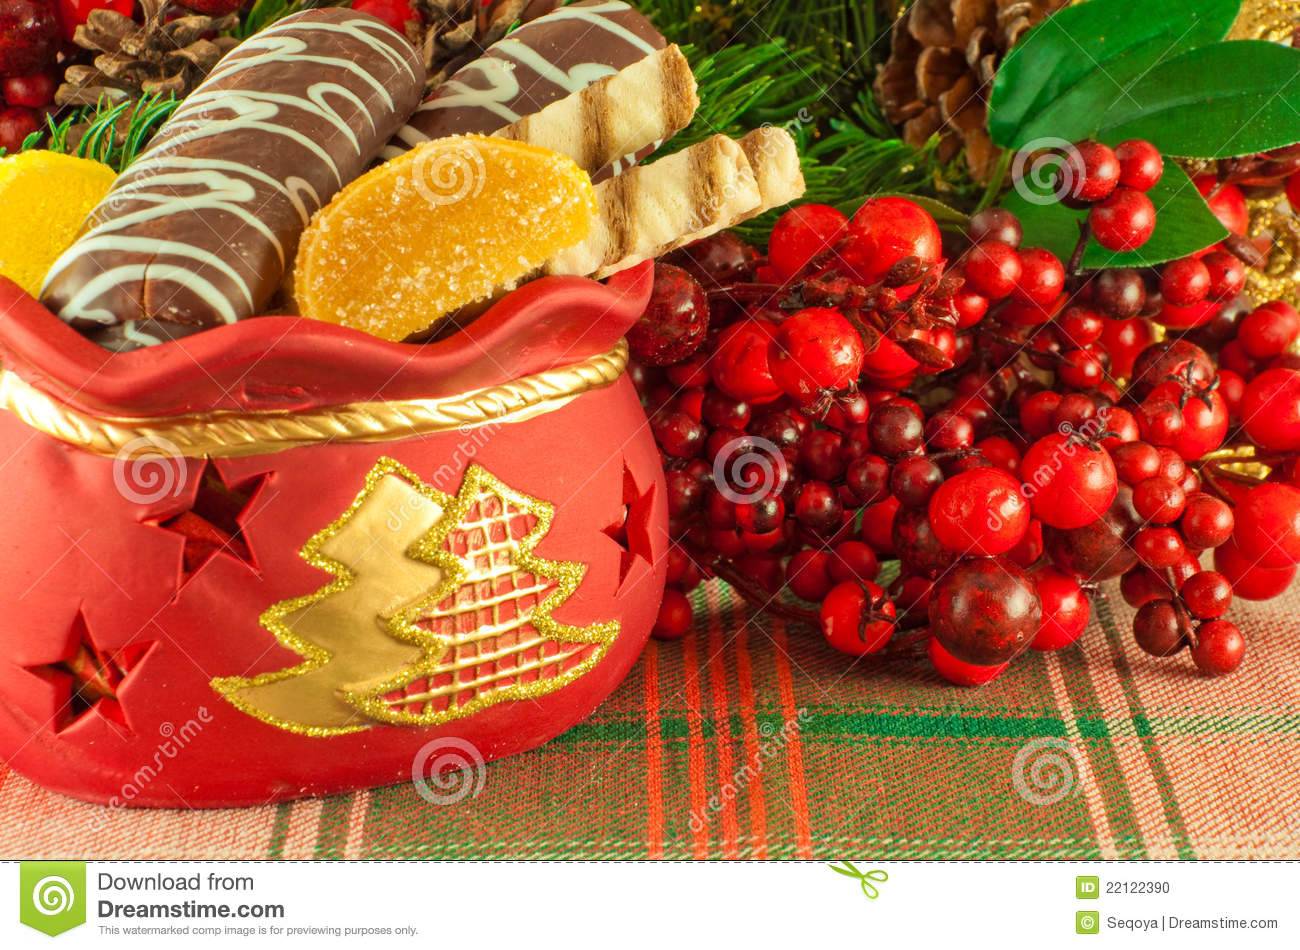 More similar stock images of christmas bag with gifts cookies